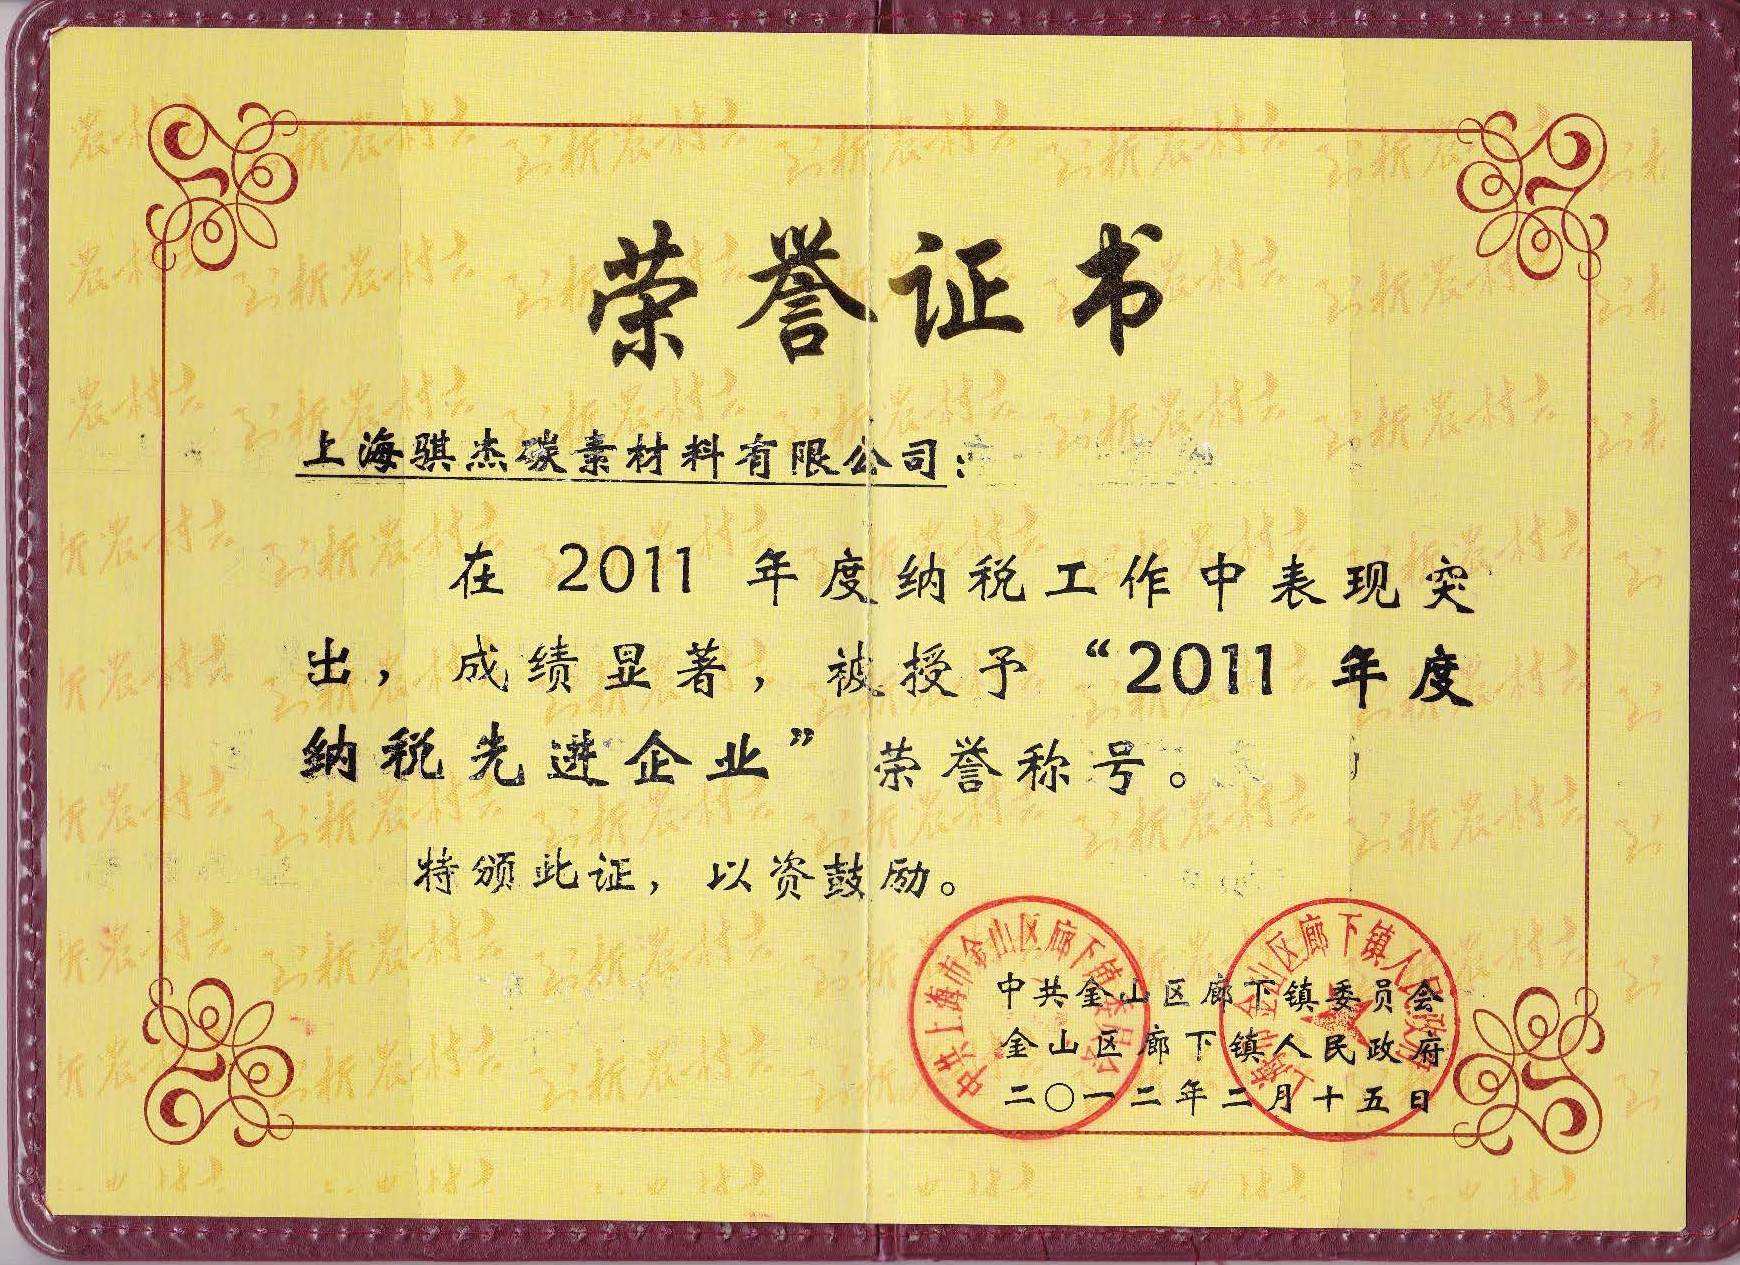 Award from Shanghai Jinshan District government in 2011